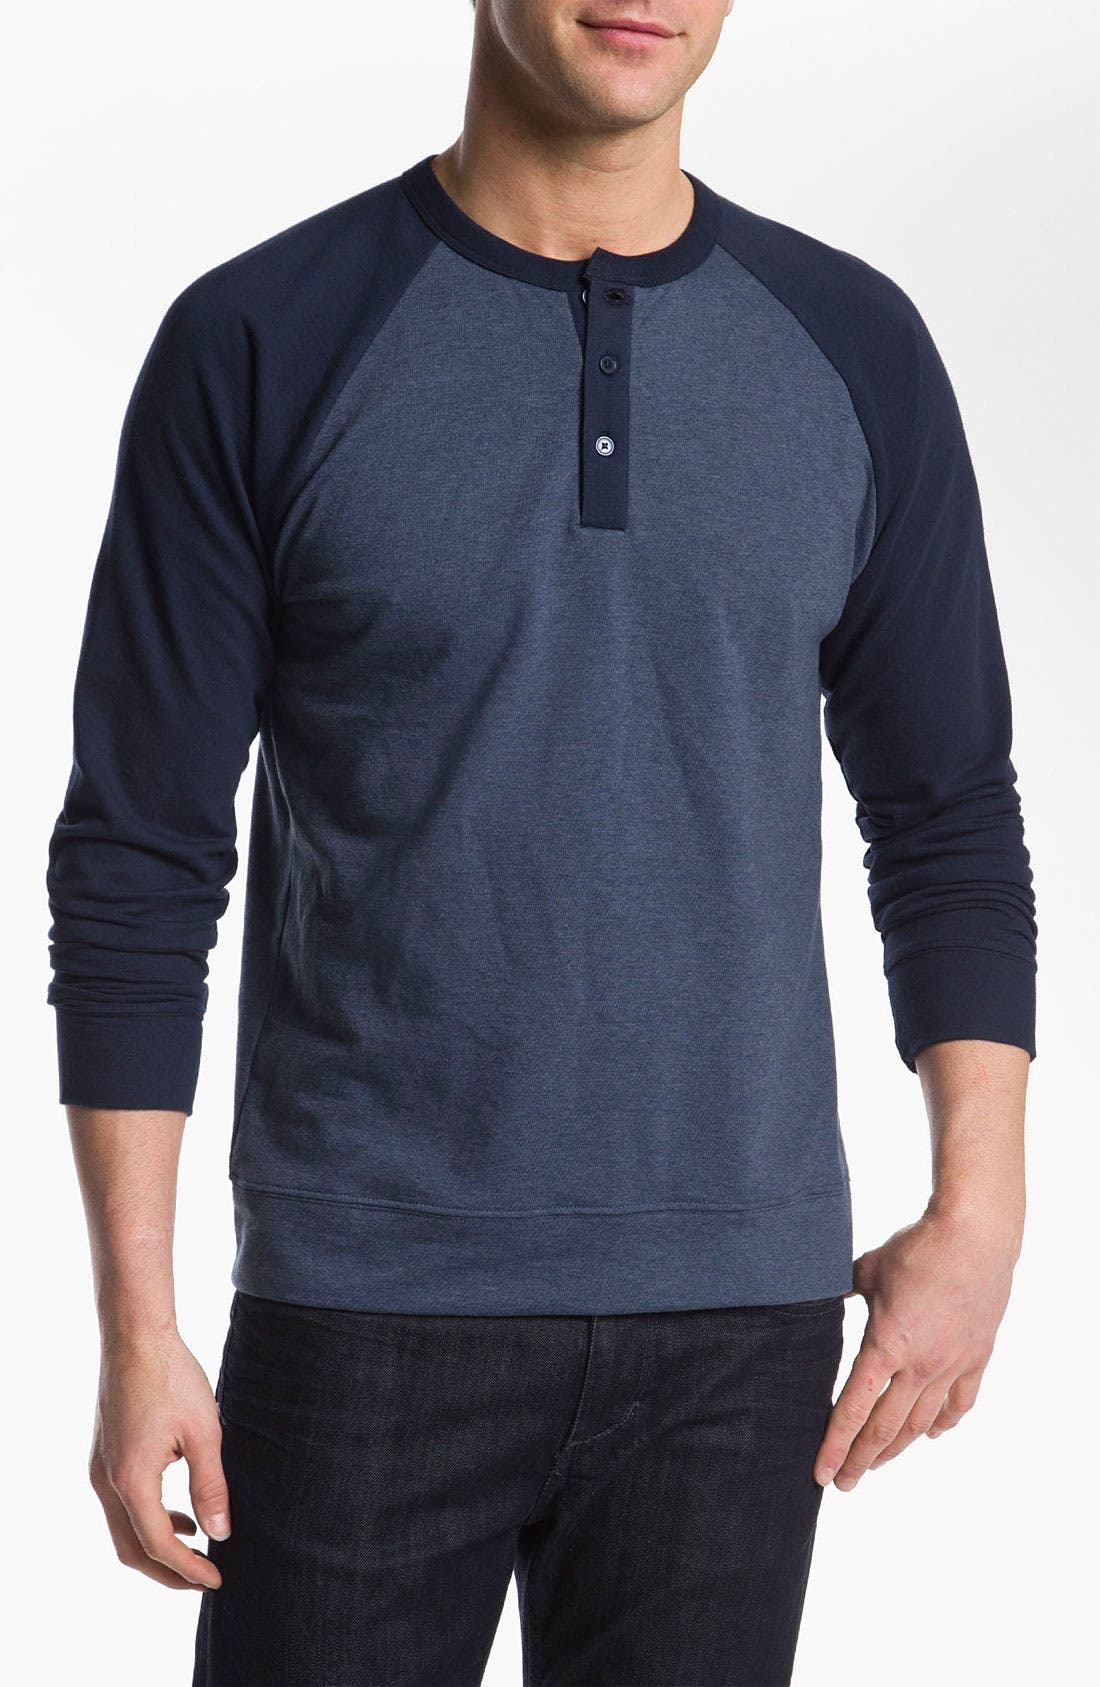 Alternate Image 1 Selected - Obey 'Schmidt' Raglan Sleeve Henley Sweatshirt